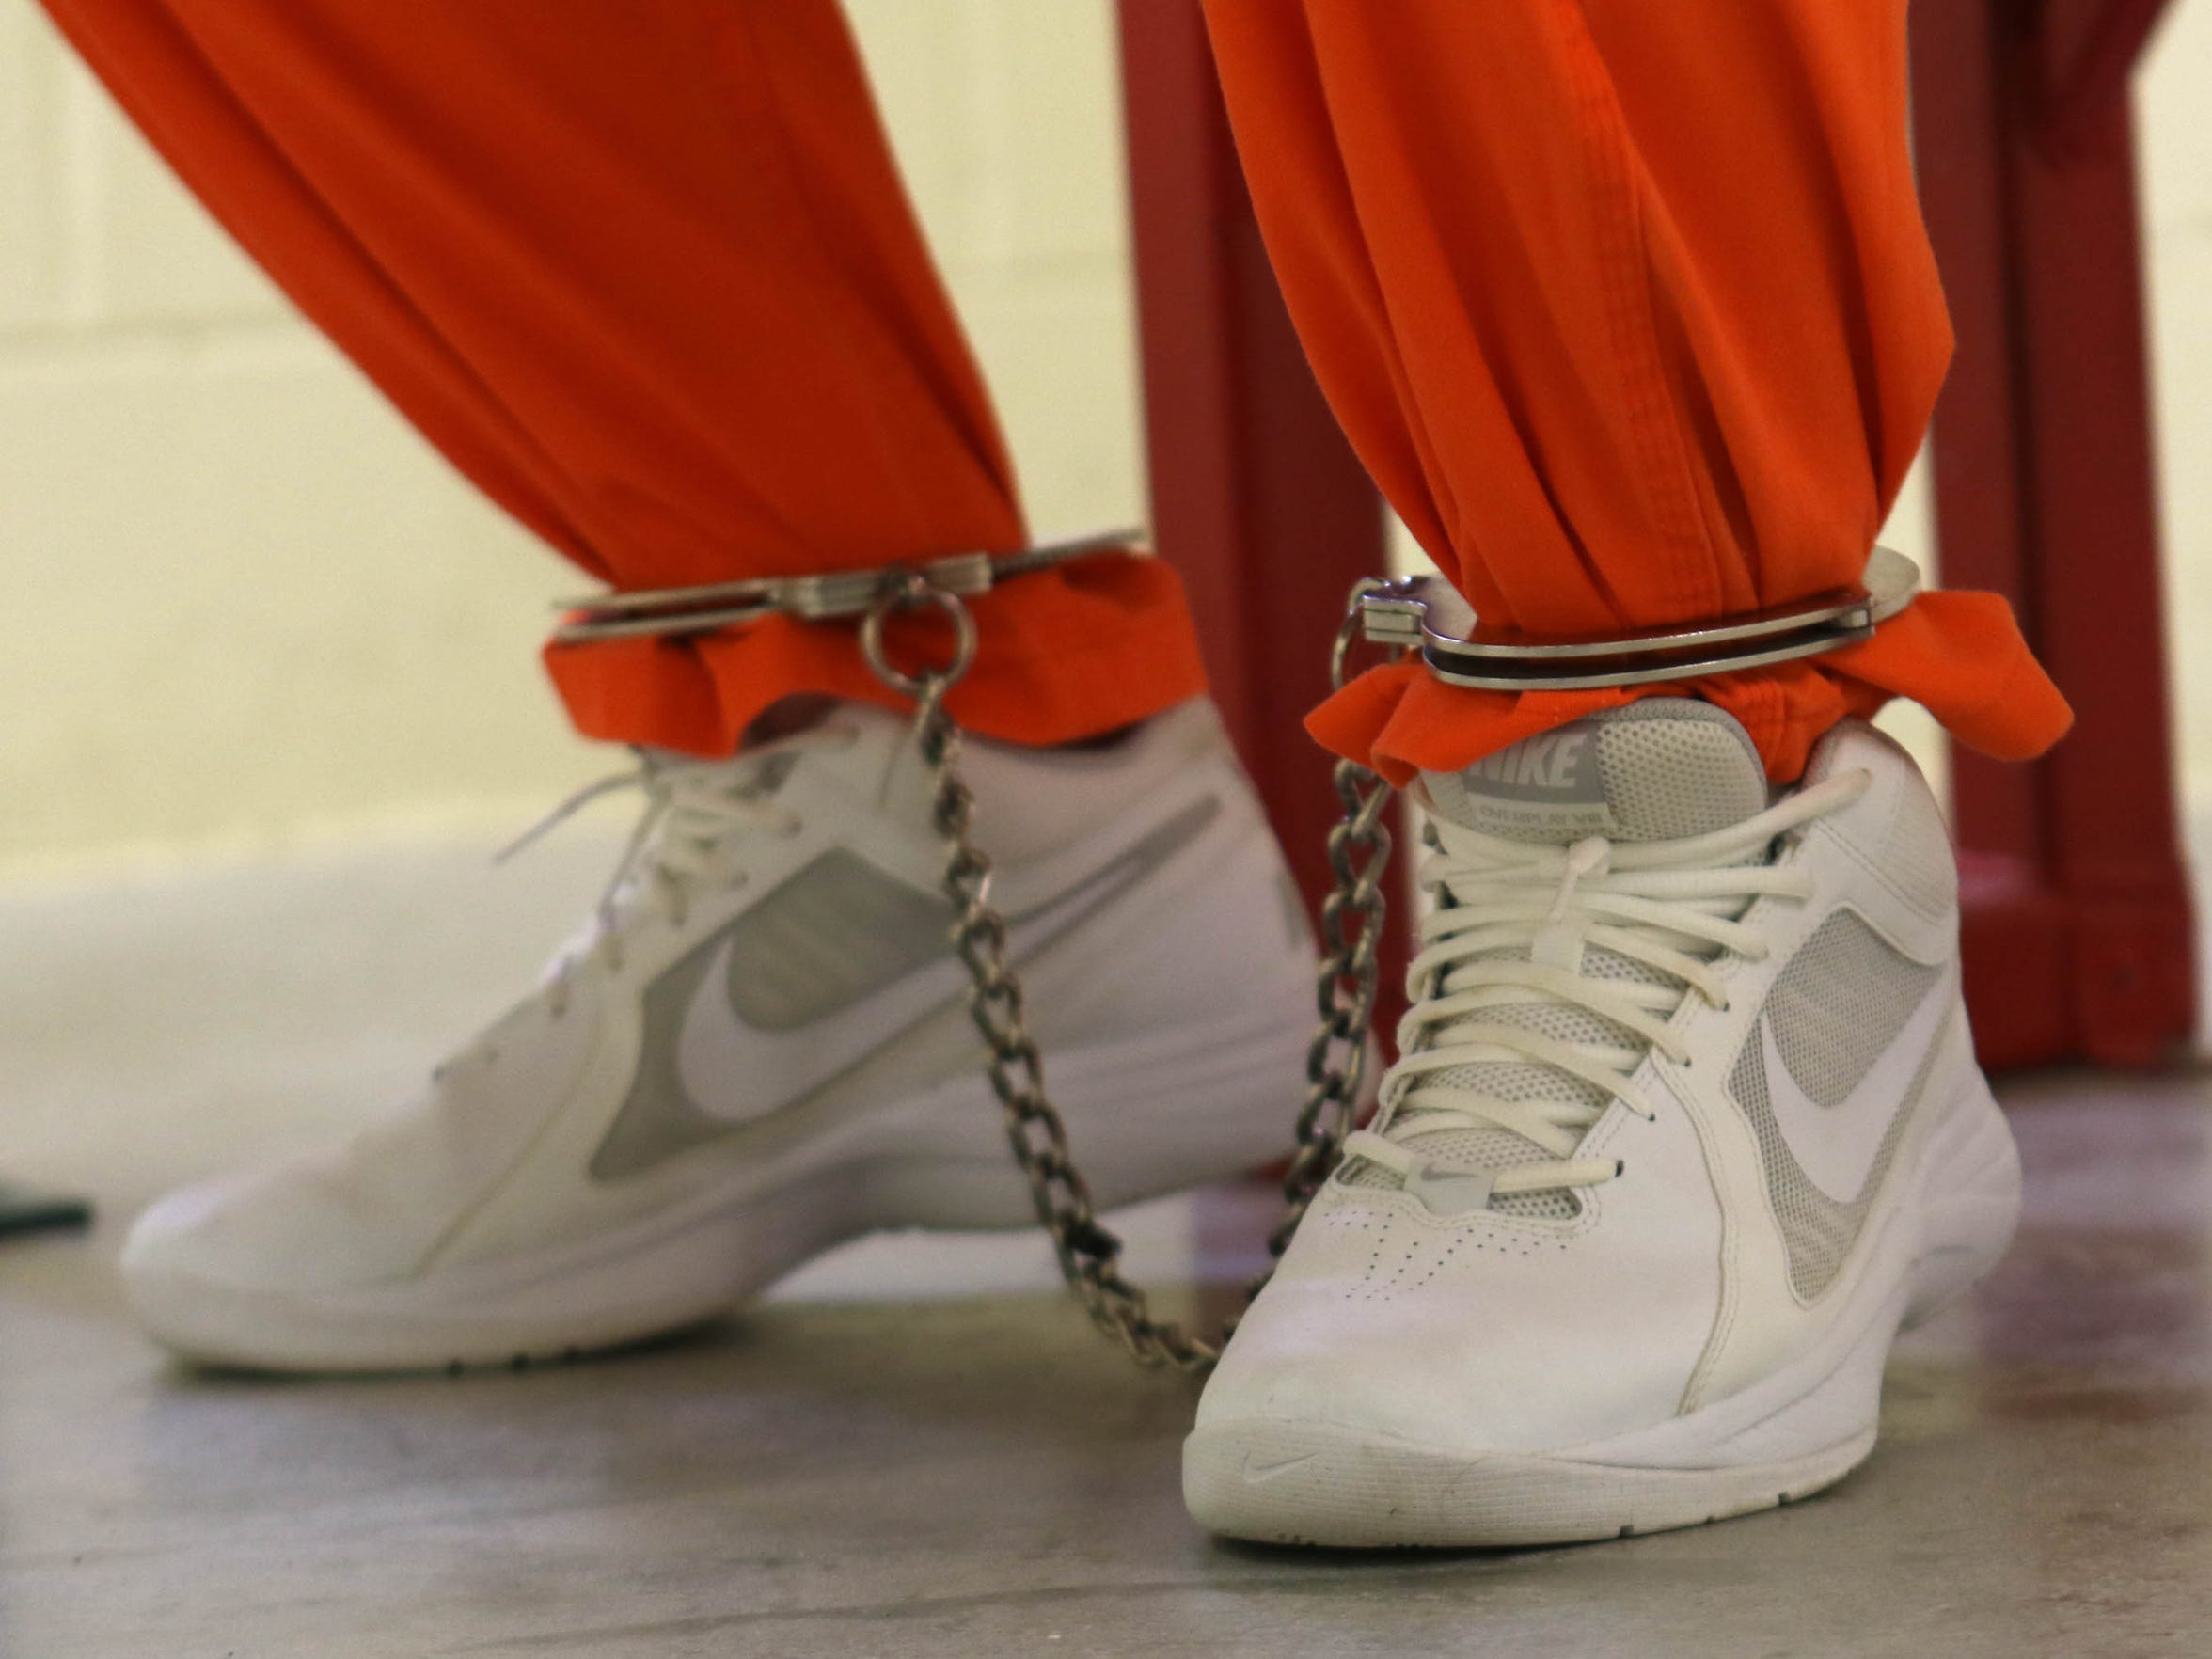 With his feet shackled, 28 year-old Justin Erskine, of Dover, who is serving a life sentence at James T. Vaughn Correctional Center, talks about living in the Security Housing Unit.